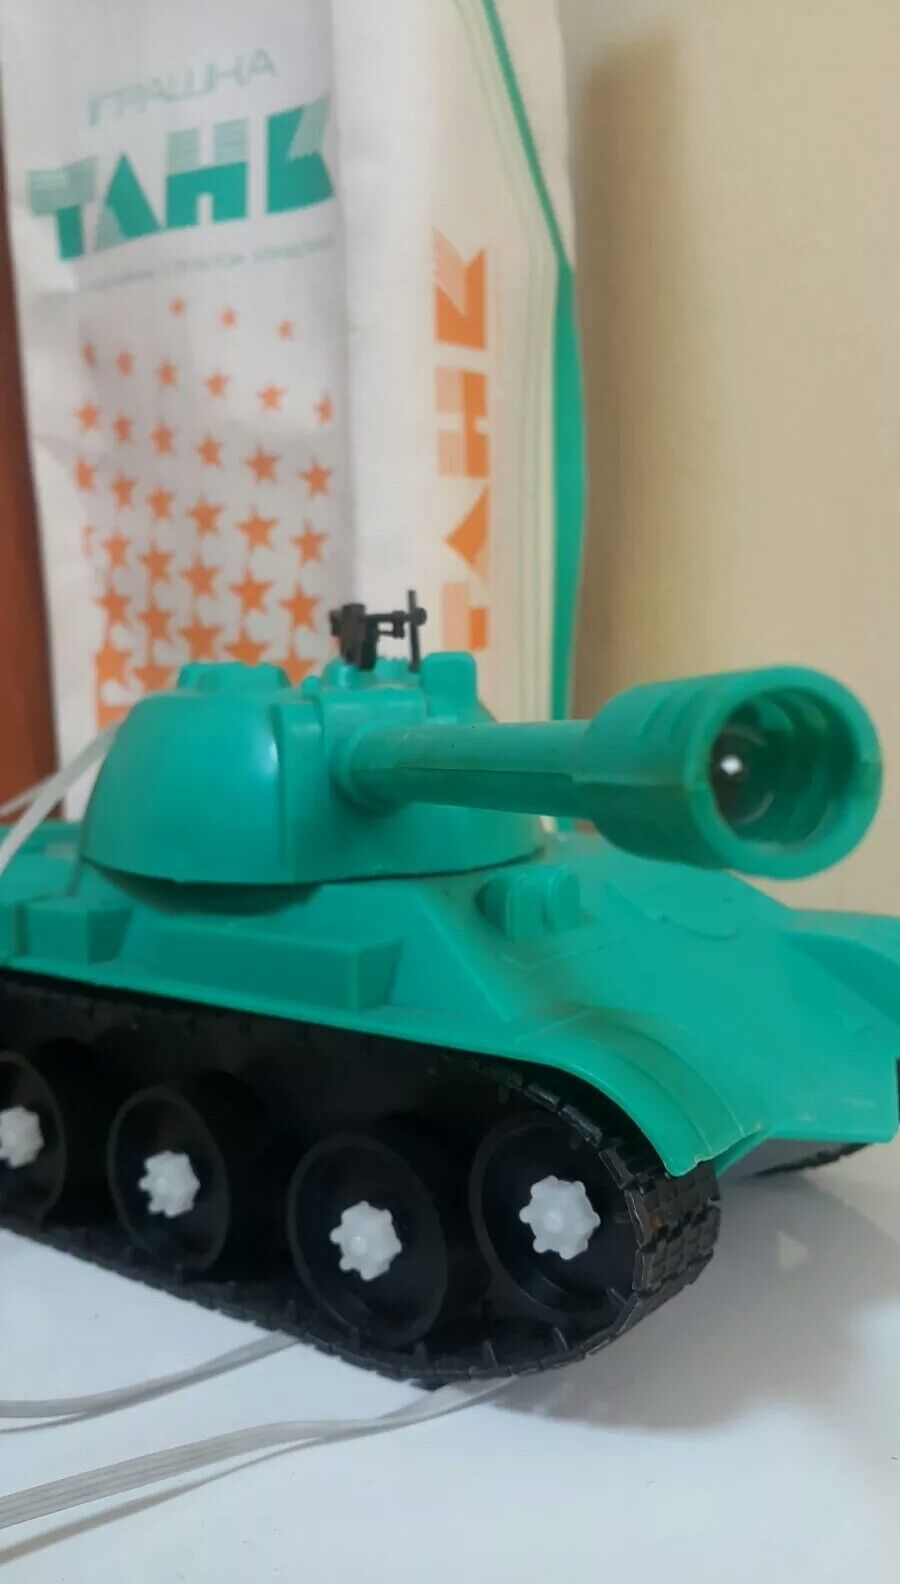 CCCP RUSSIA USSR ORIGINAL OPERATED BATTERY TOY TANK VINTAGE